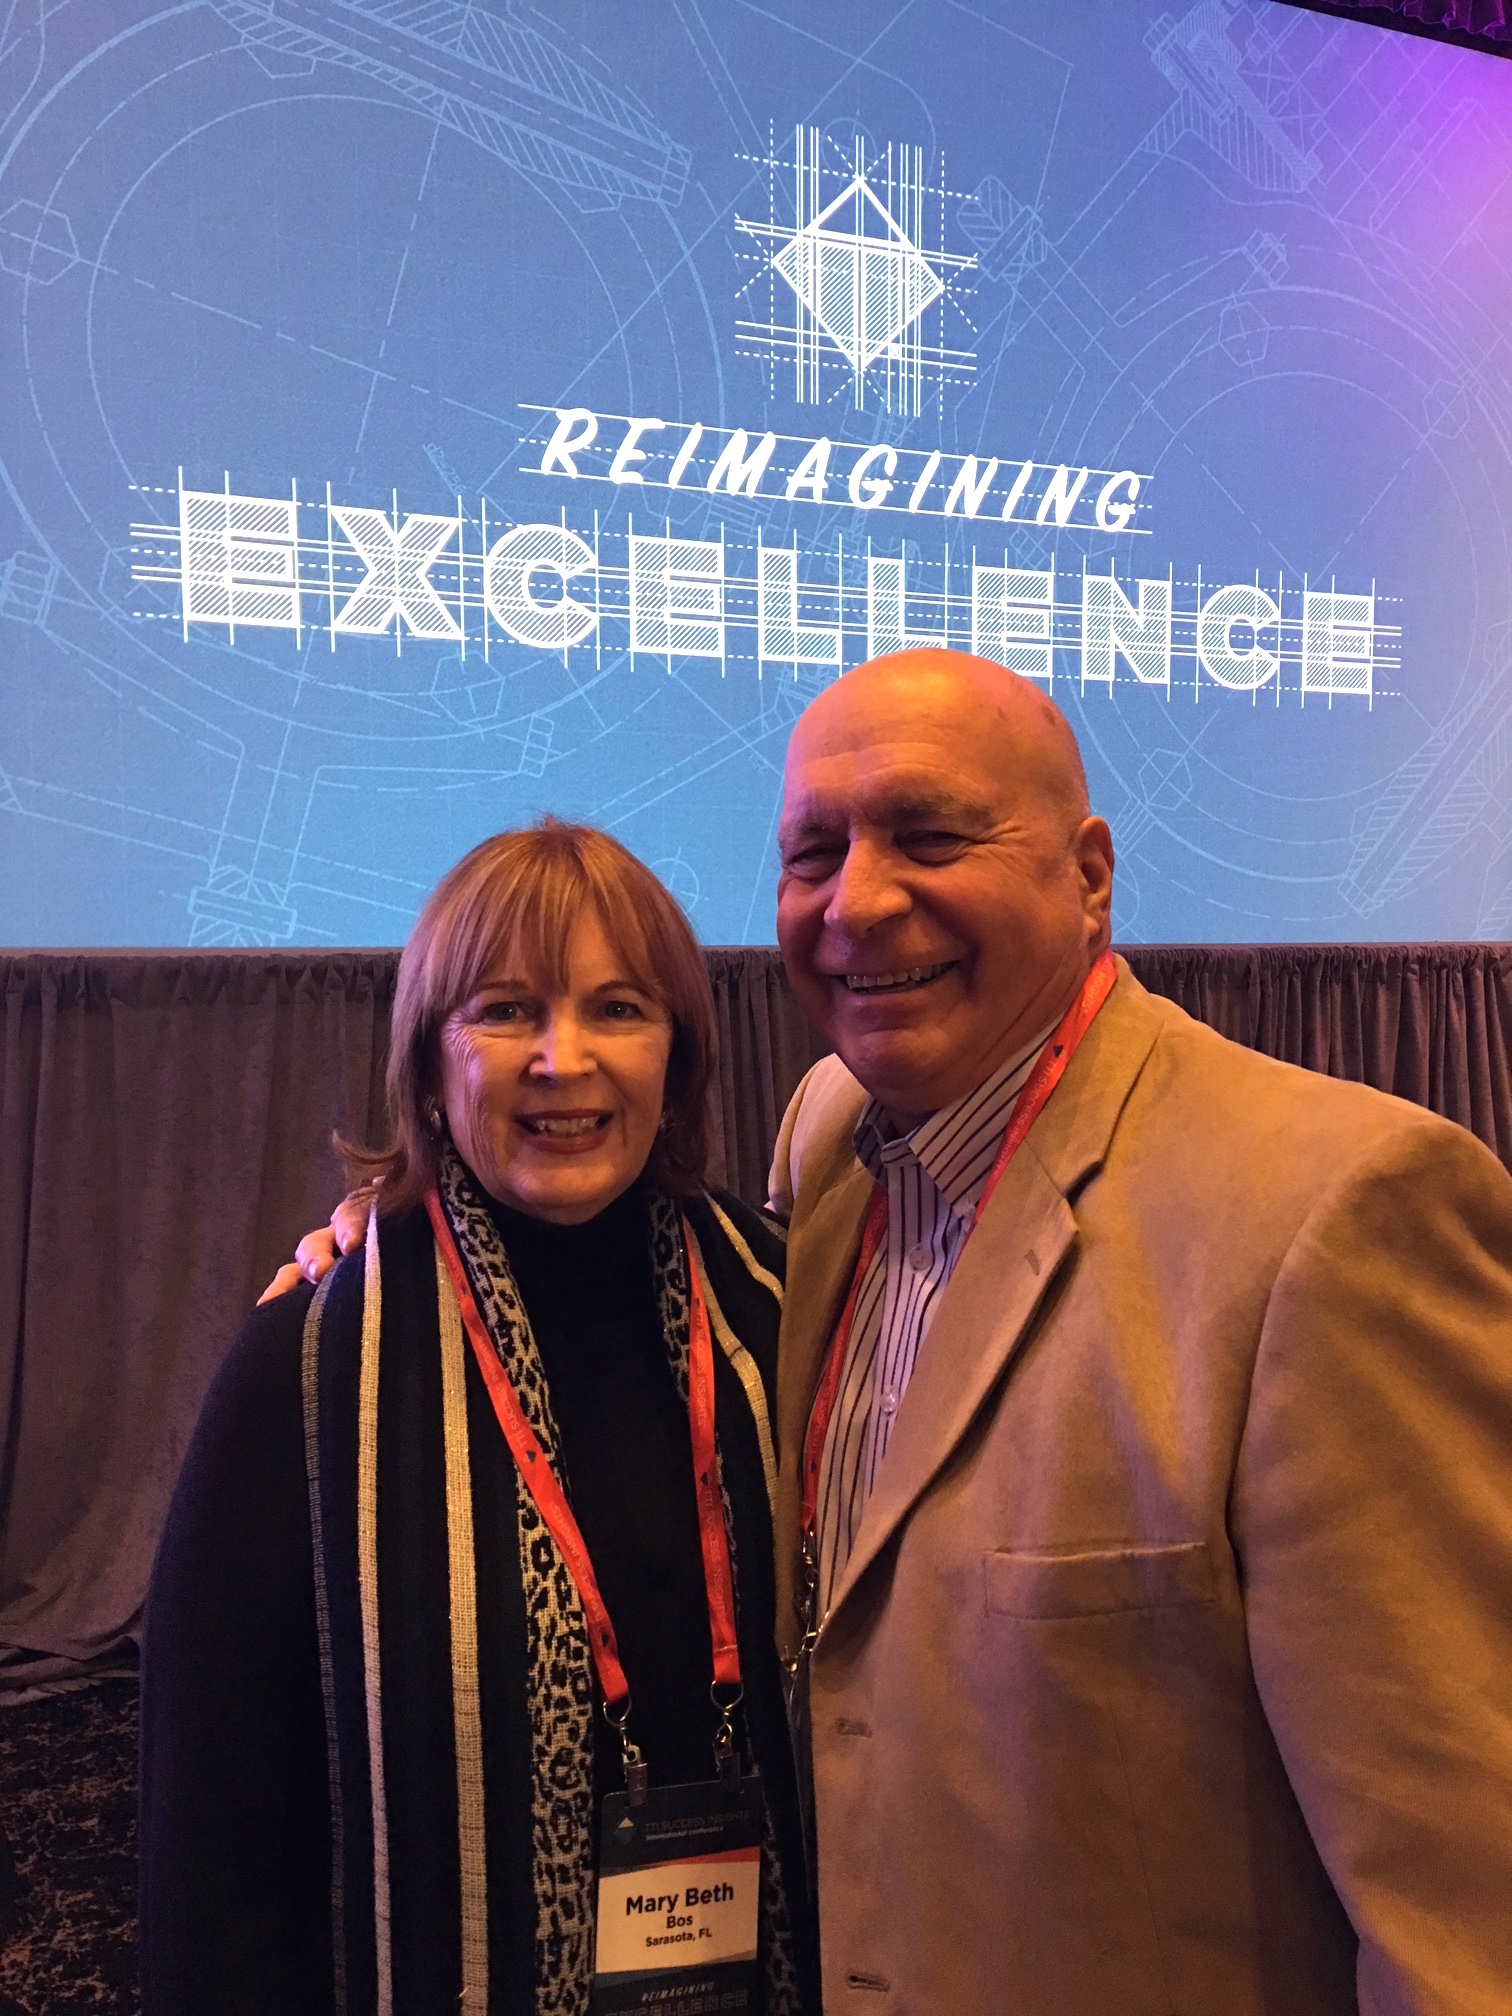 MBJ Group co-owners return from prominent international conference